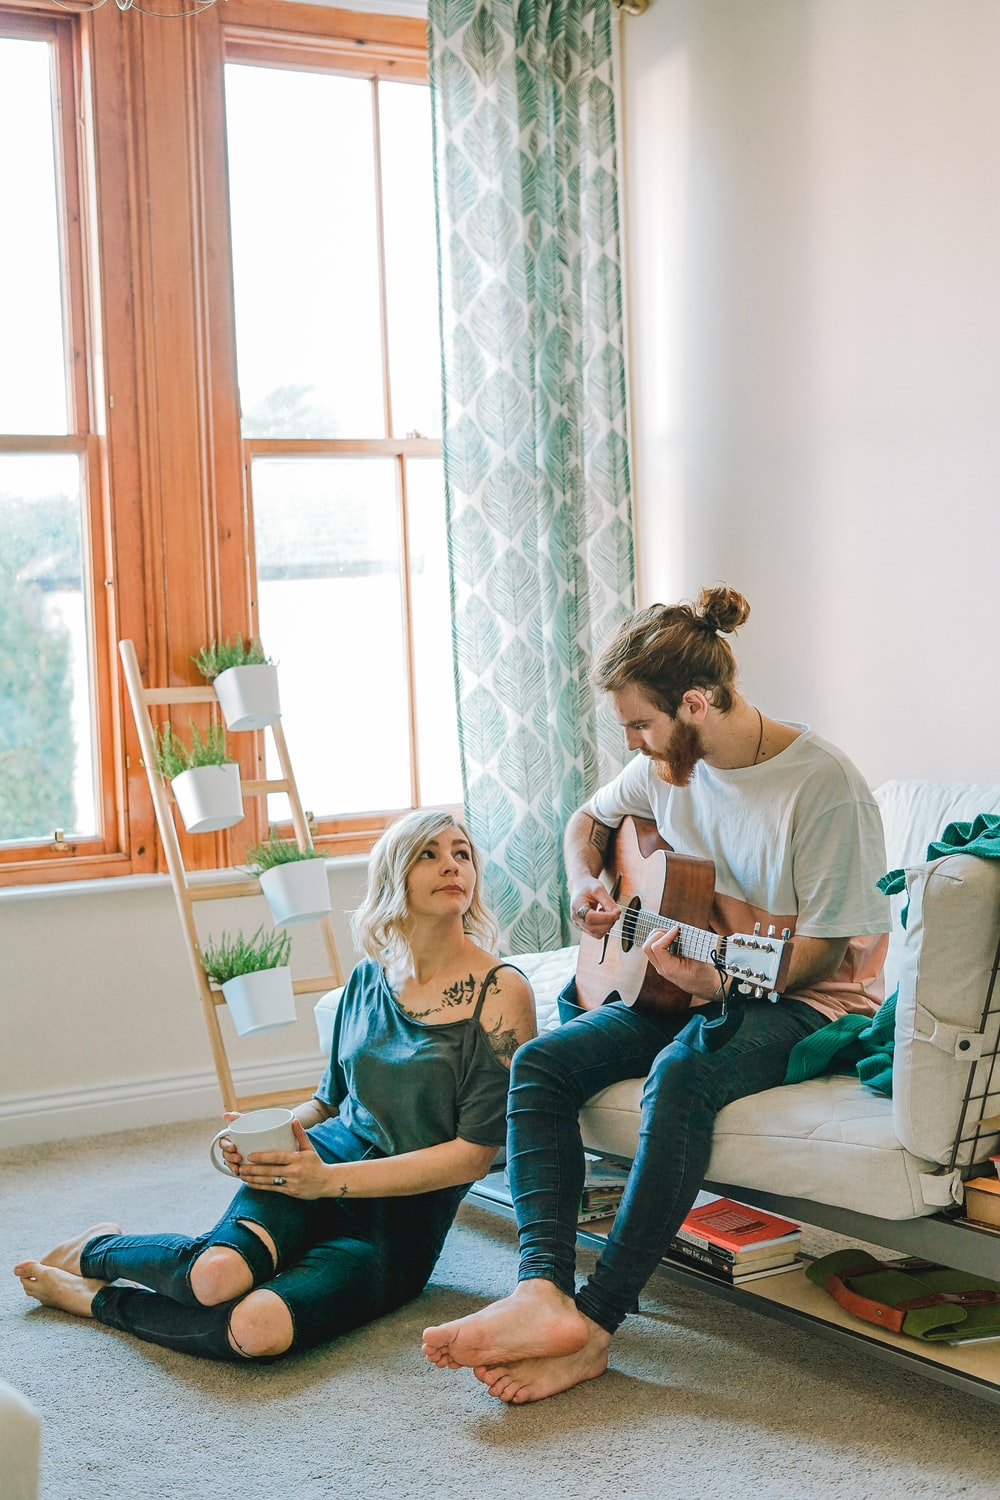 man sitting on sofa playing guitar looking at girl sitting on the ground near window inside room